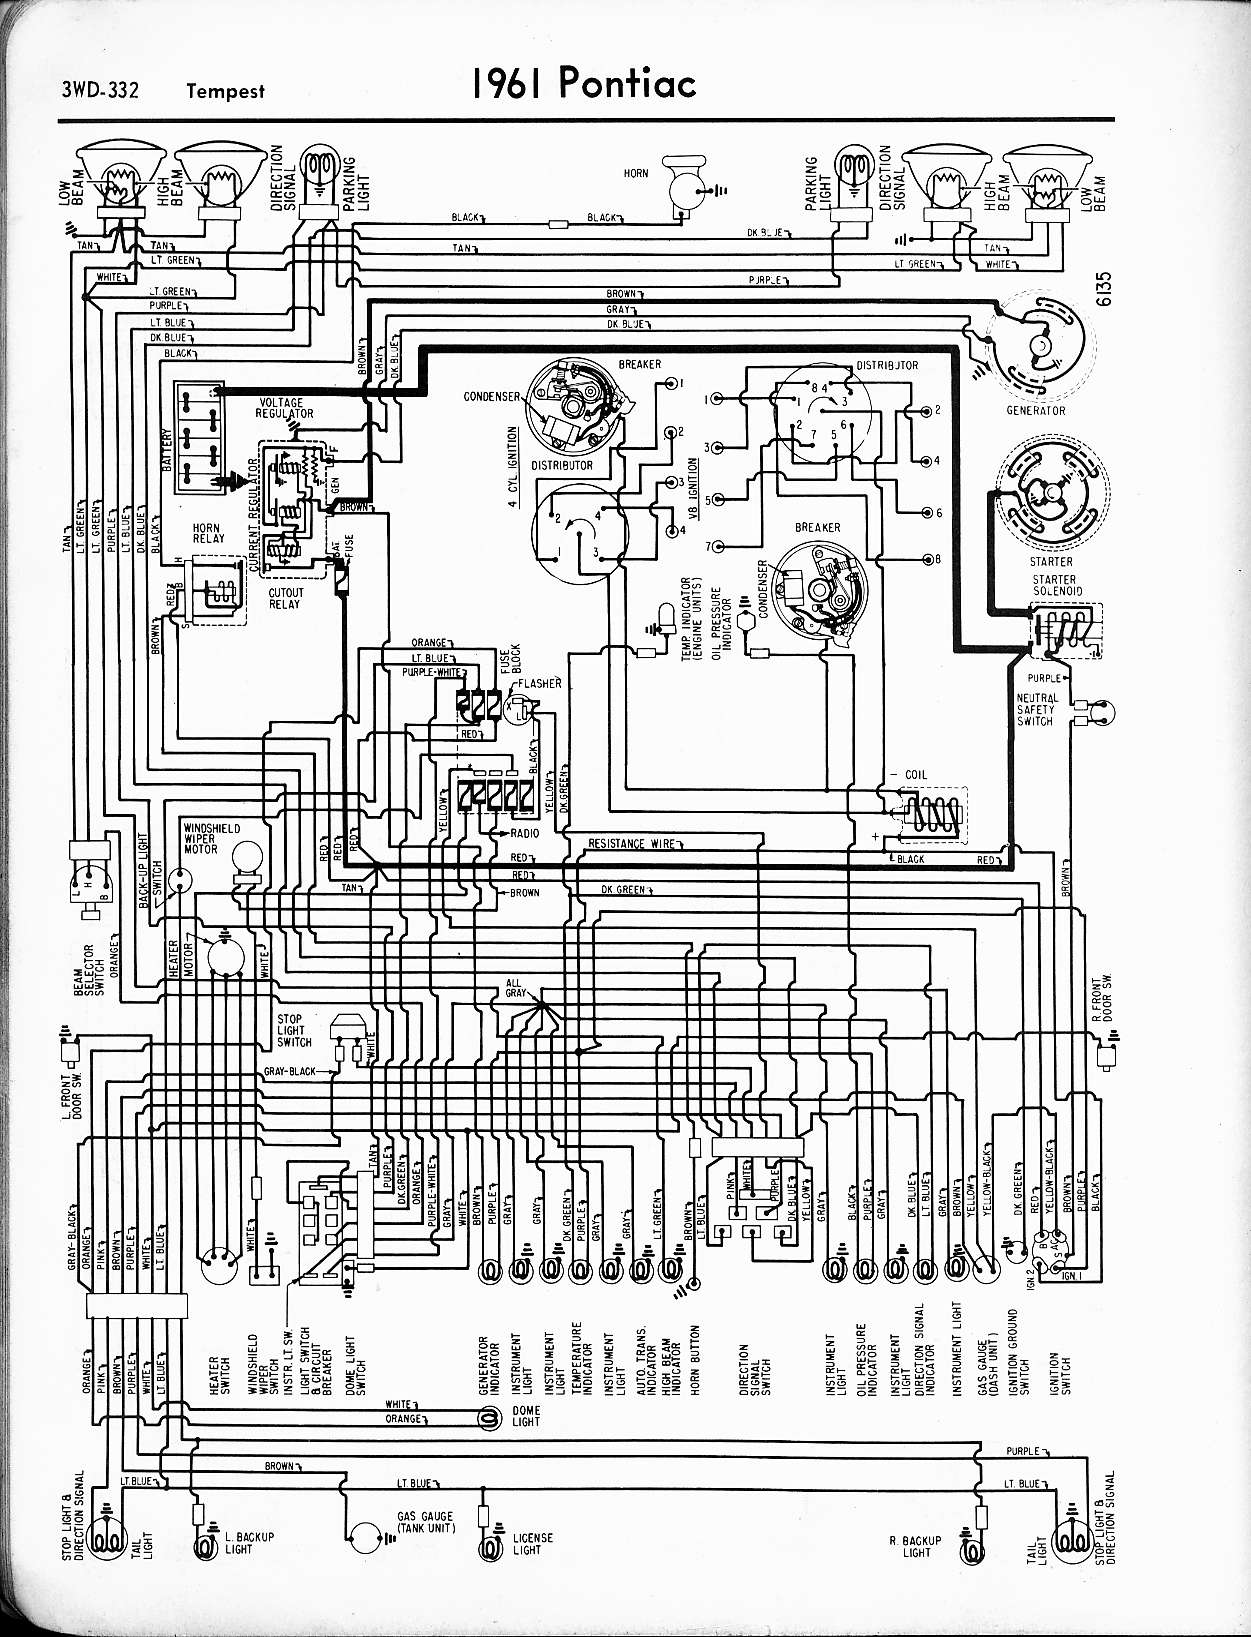 [WRG-2562] Roadrunner Fuse Box Diagram